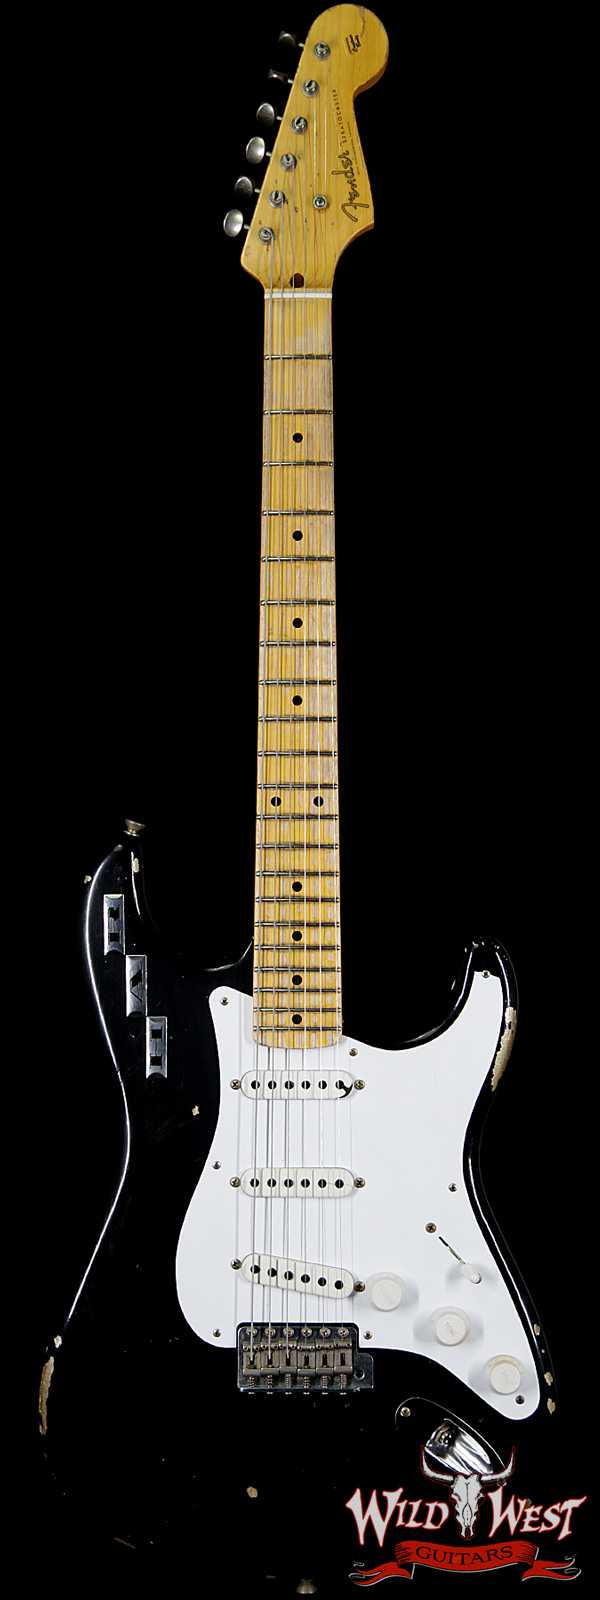 Fender Custom Shop Masterbuilt Dennis Galuszka Private Collection HAR Stratocaster Black 7.25 Lbs